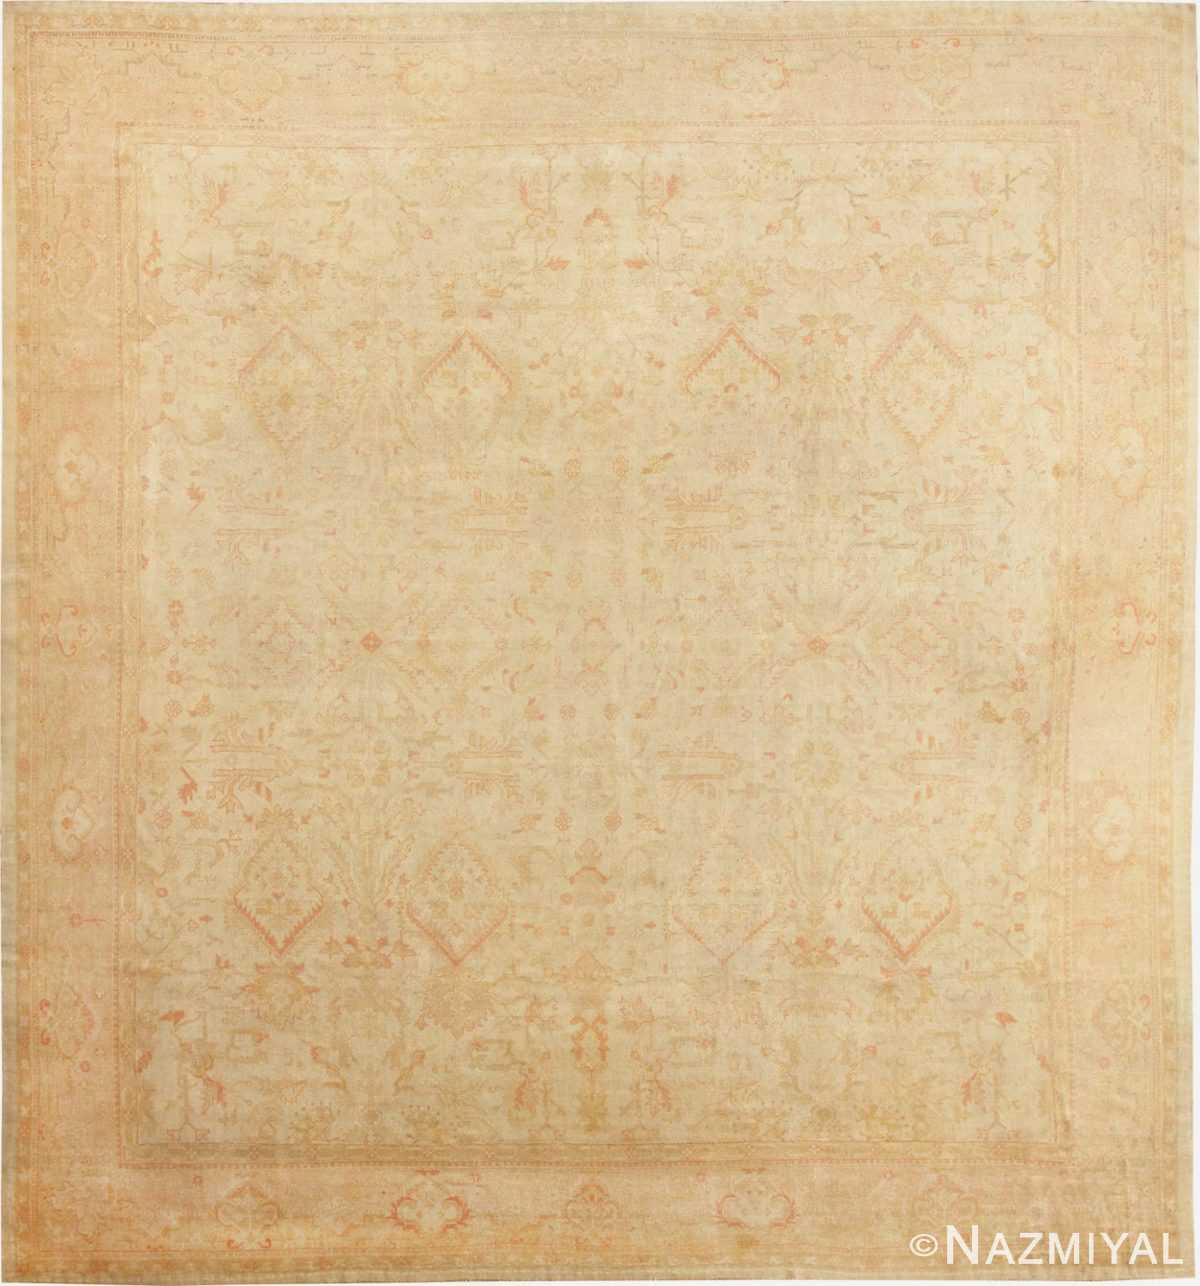 Large Square Size Antique Decorative Turkish Oushak Rug 48377 Nazmiyal